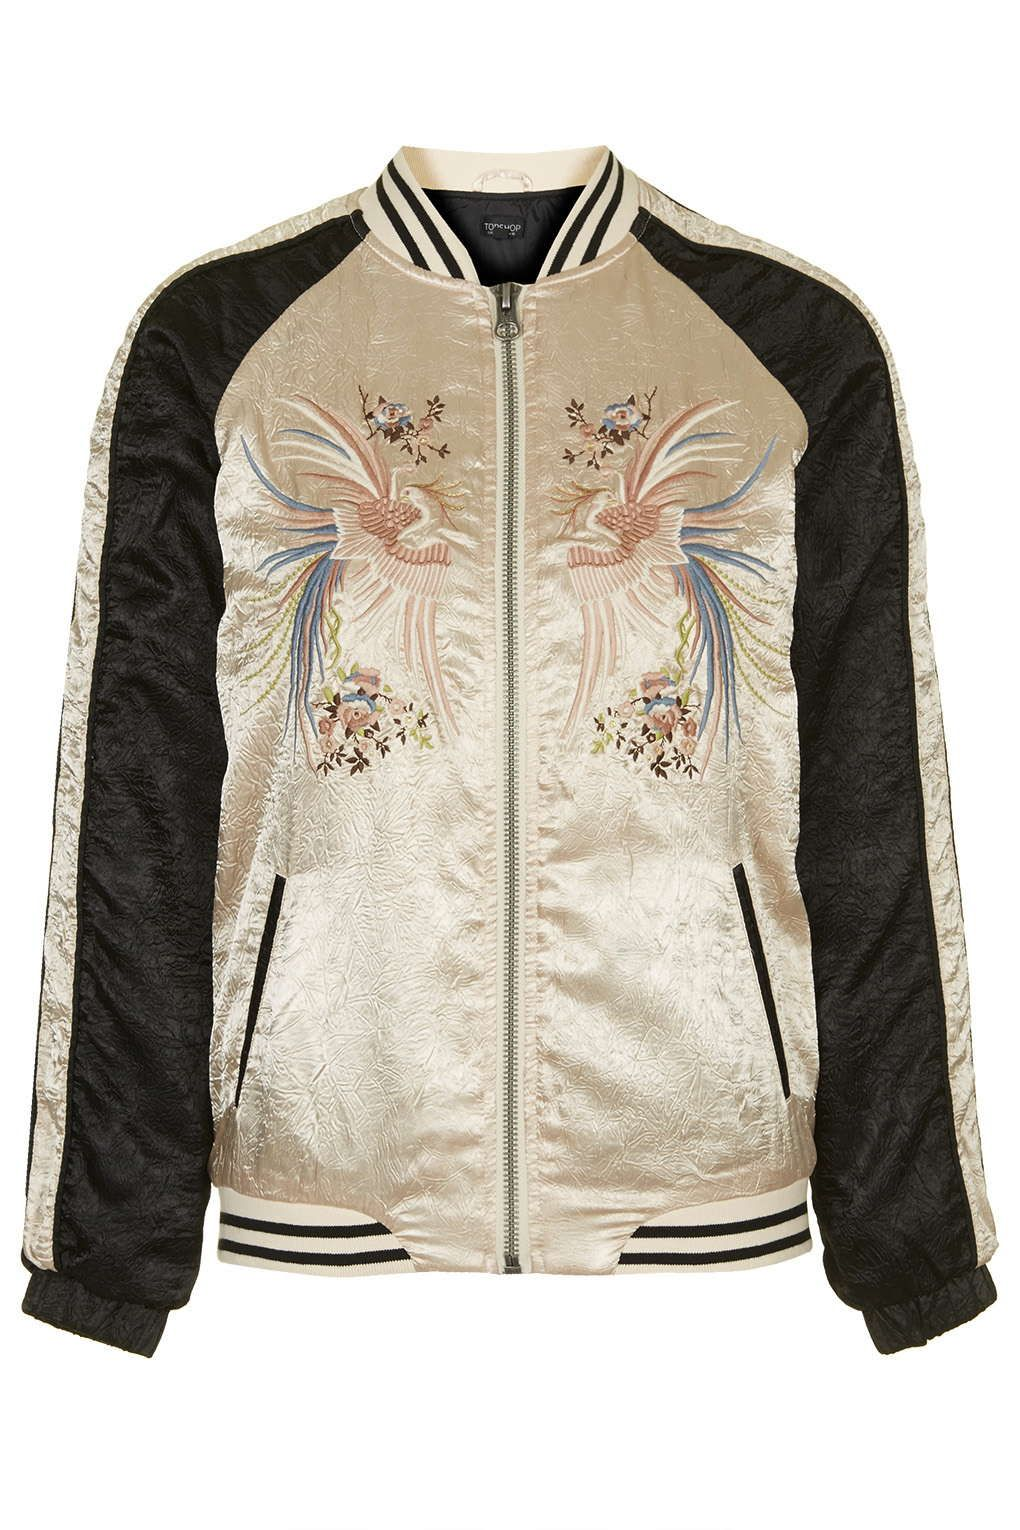 Embroidered bomber jacket womens – New Fashion Photo Blog